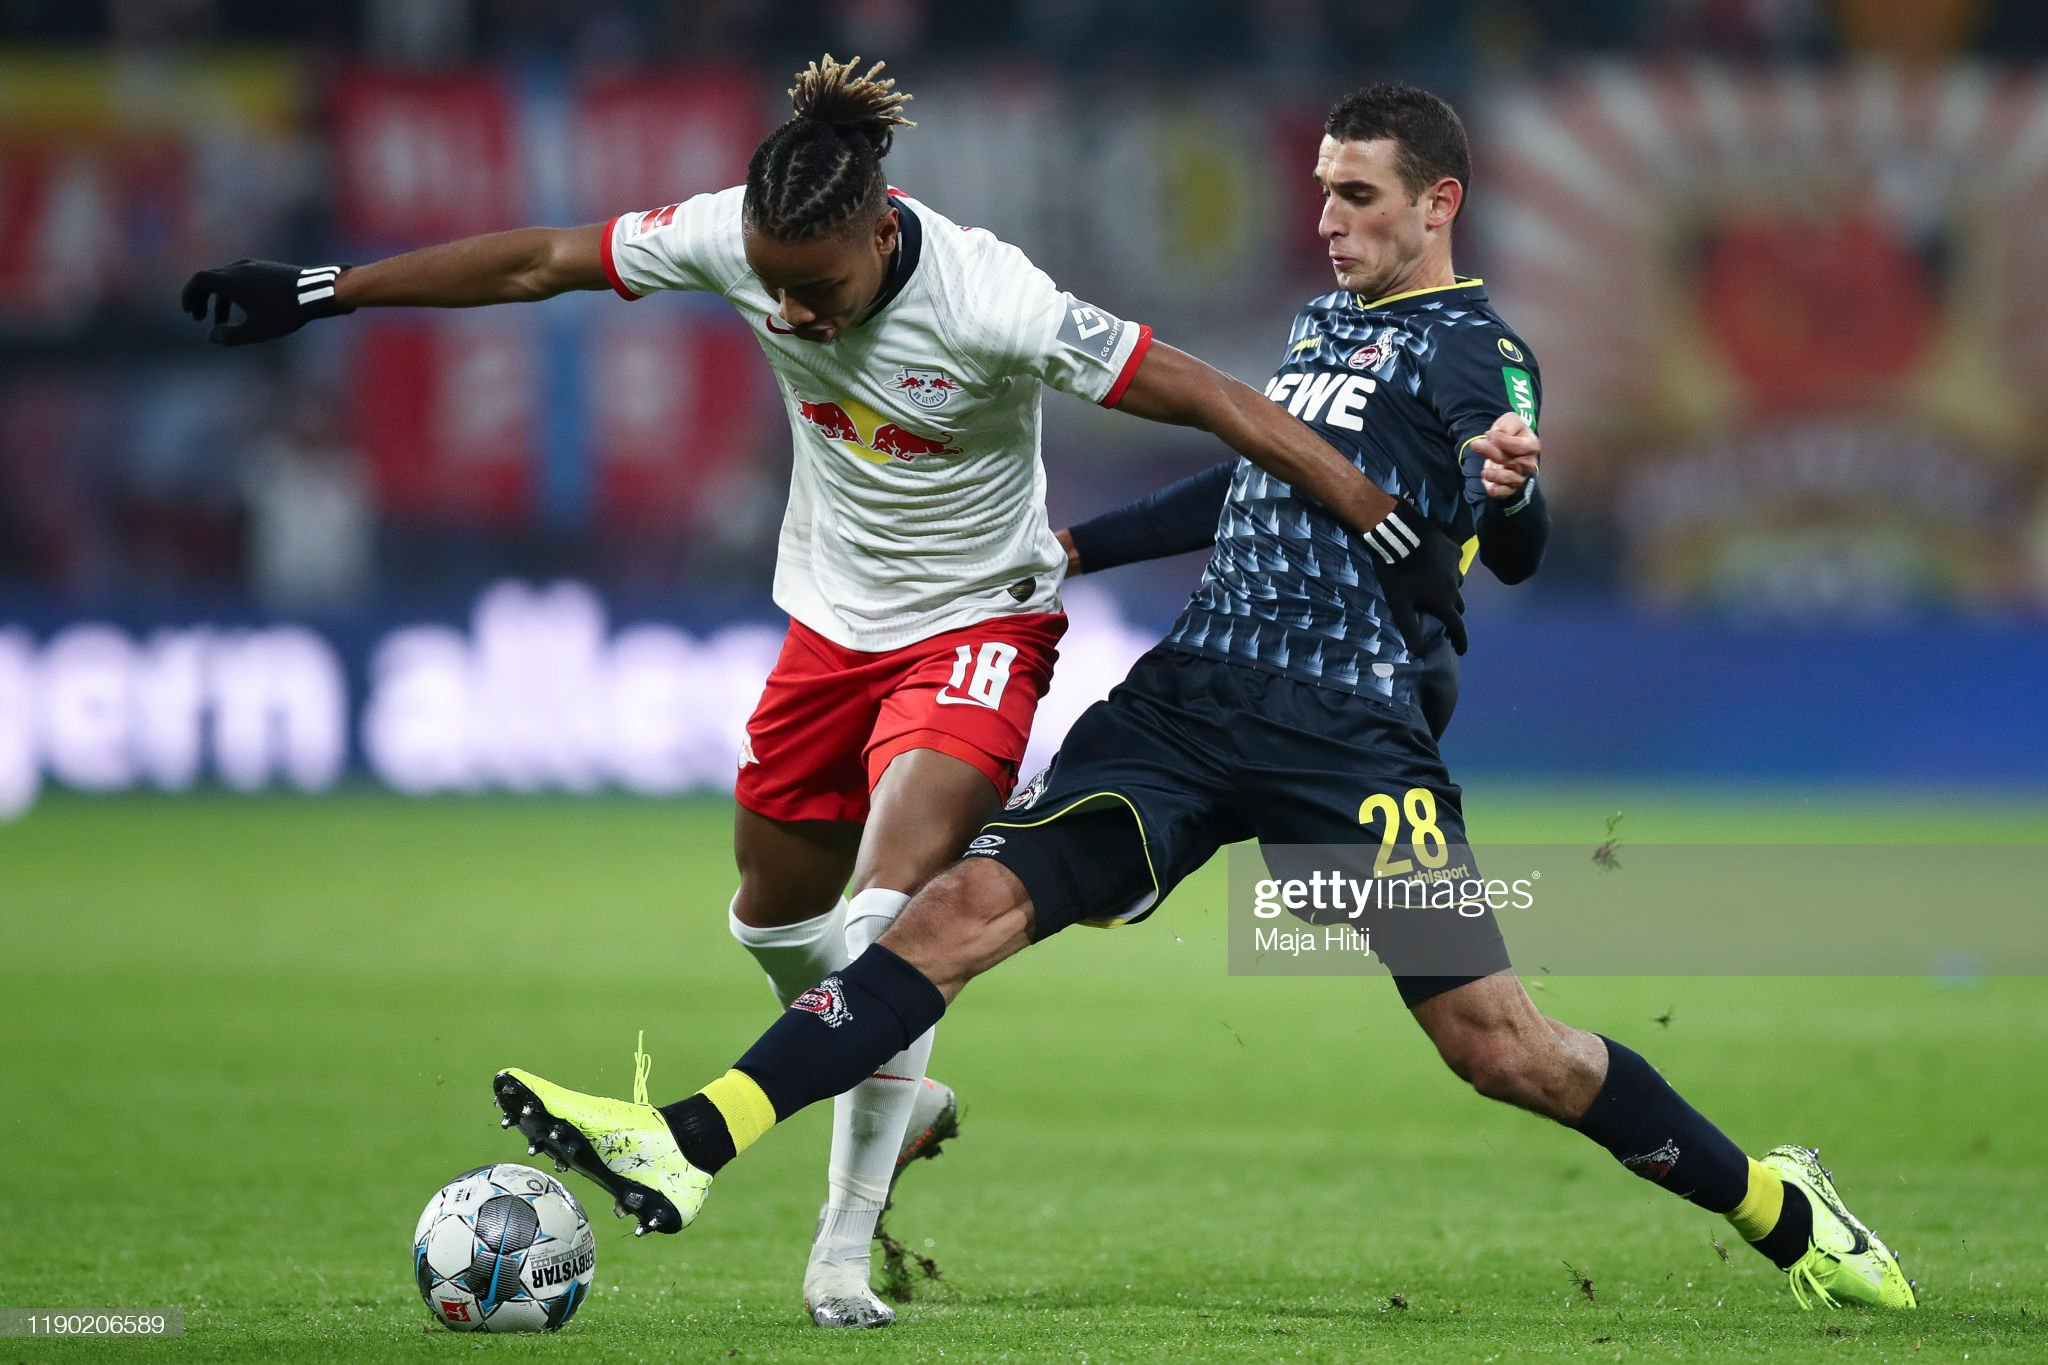 Koln vs RB Leipzig Preview, prediction and odds